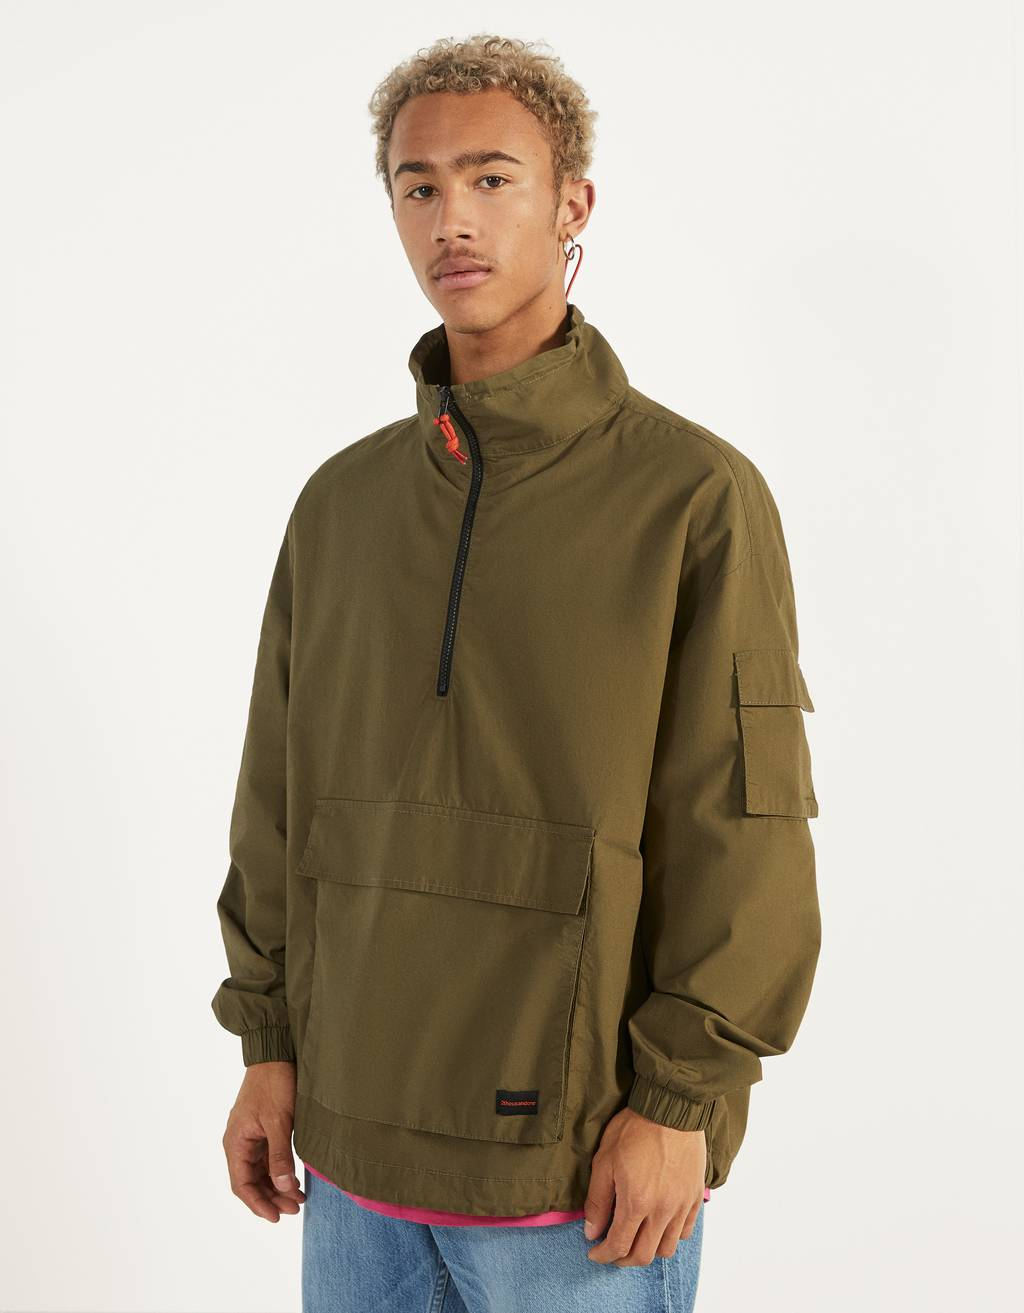 Overshirt with pouch pocket and zip